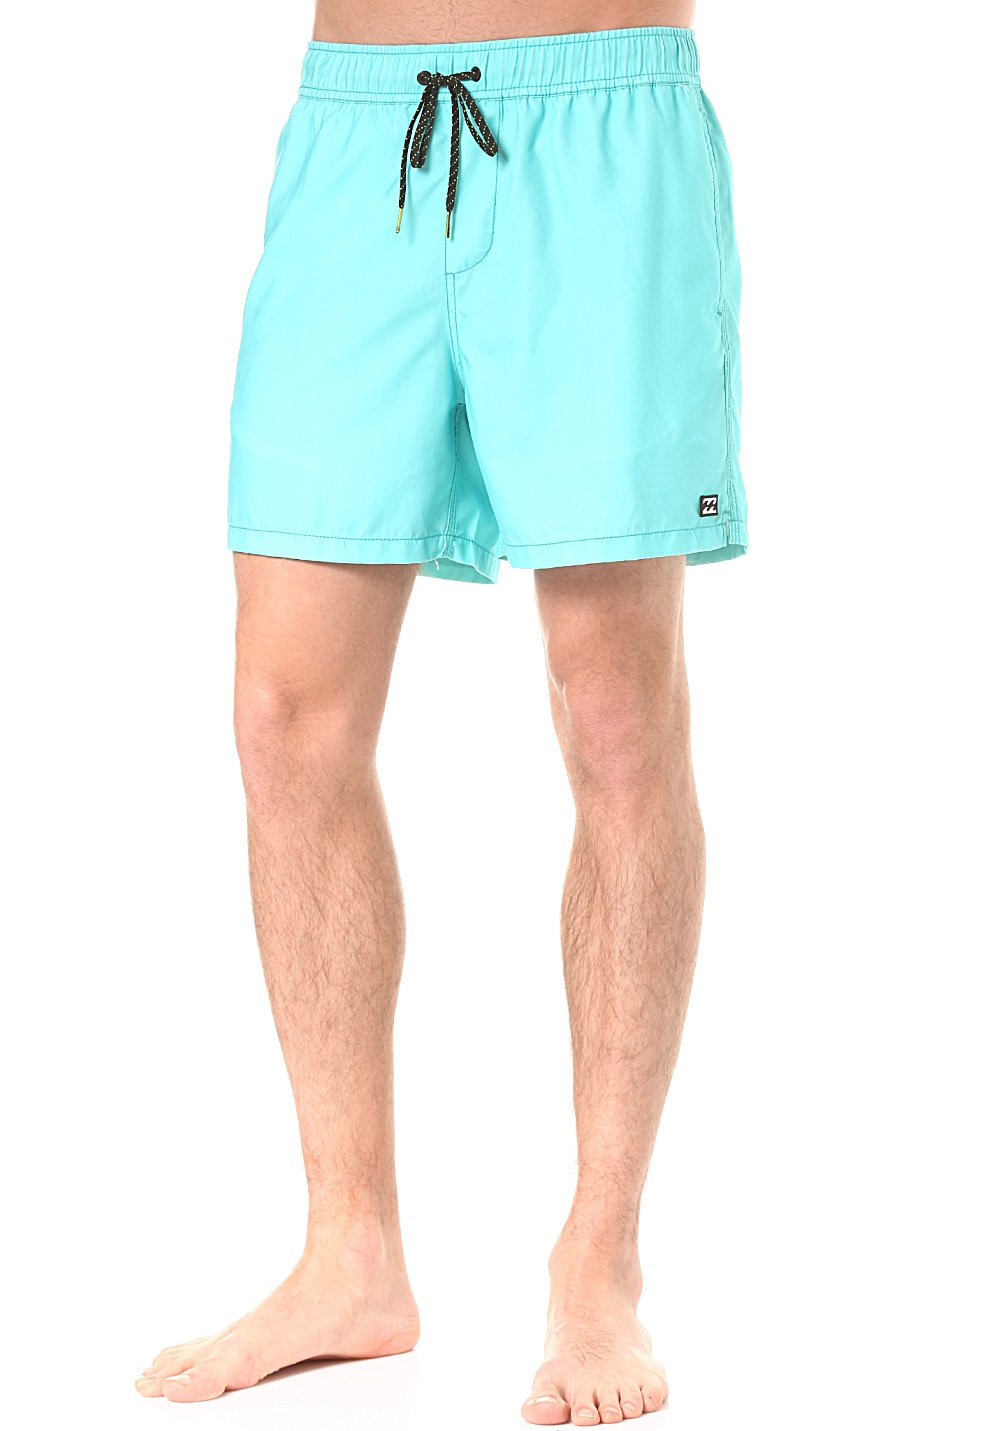 Billabong Men's All Day Layback 16?Shorts, Men, ALL DAY LAYBACK 16